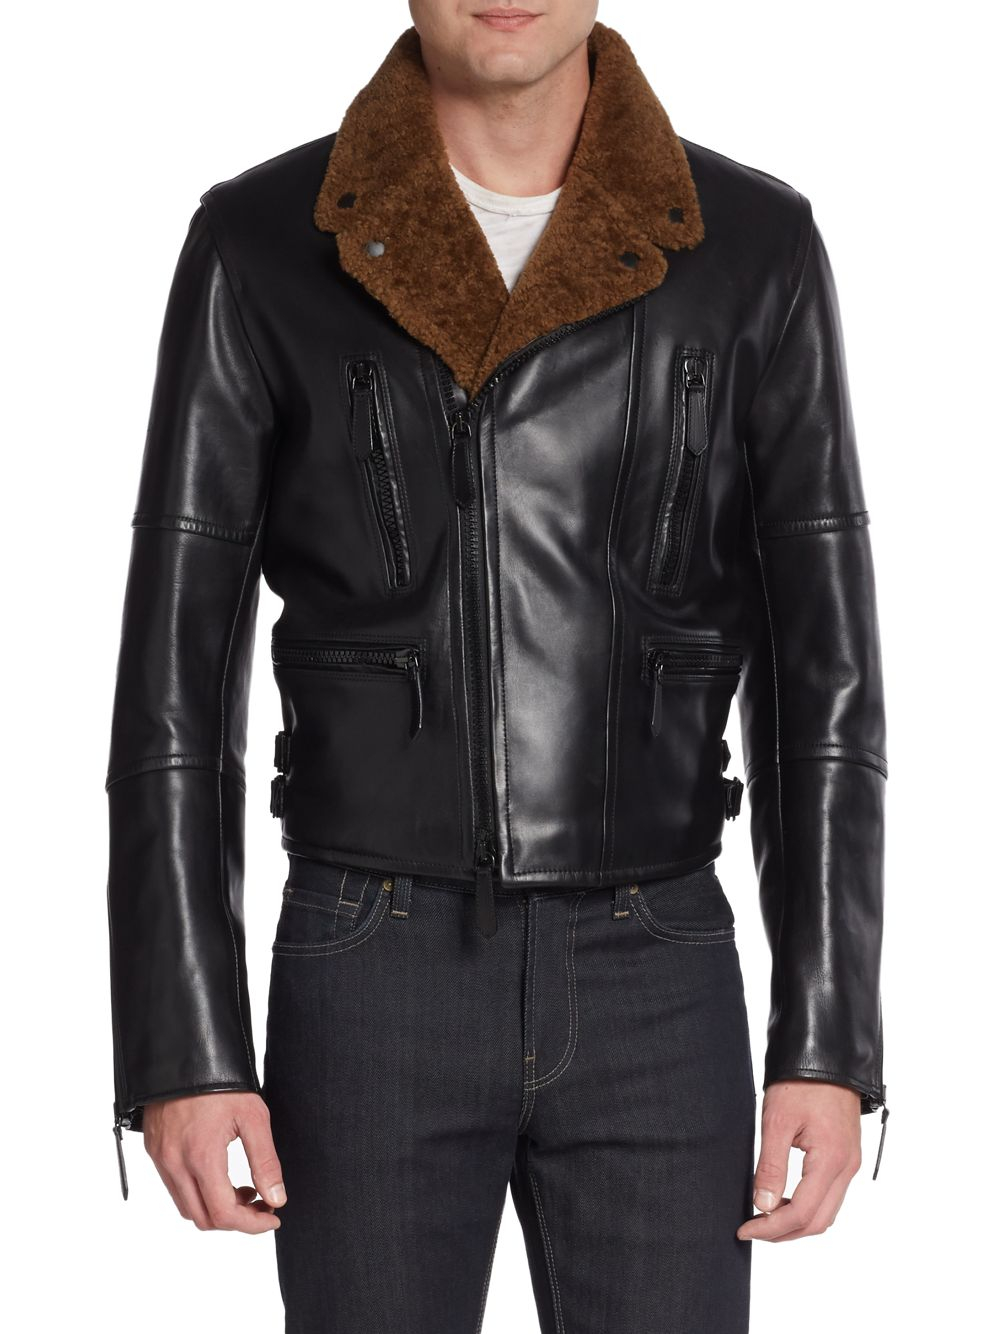 Burberry Prorsum Leather Amp Shearling Moto Jacket In Black